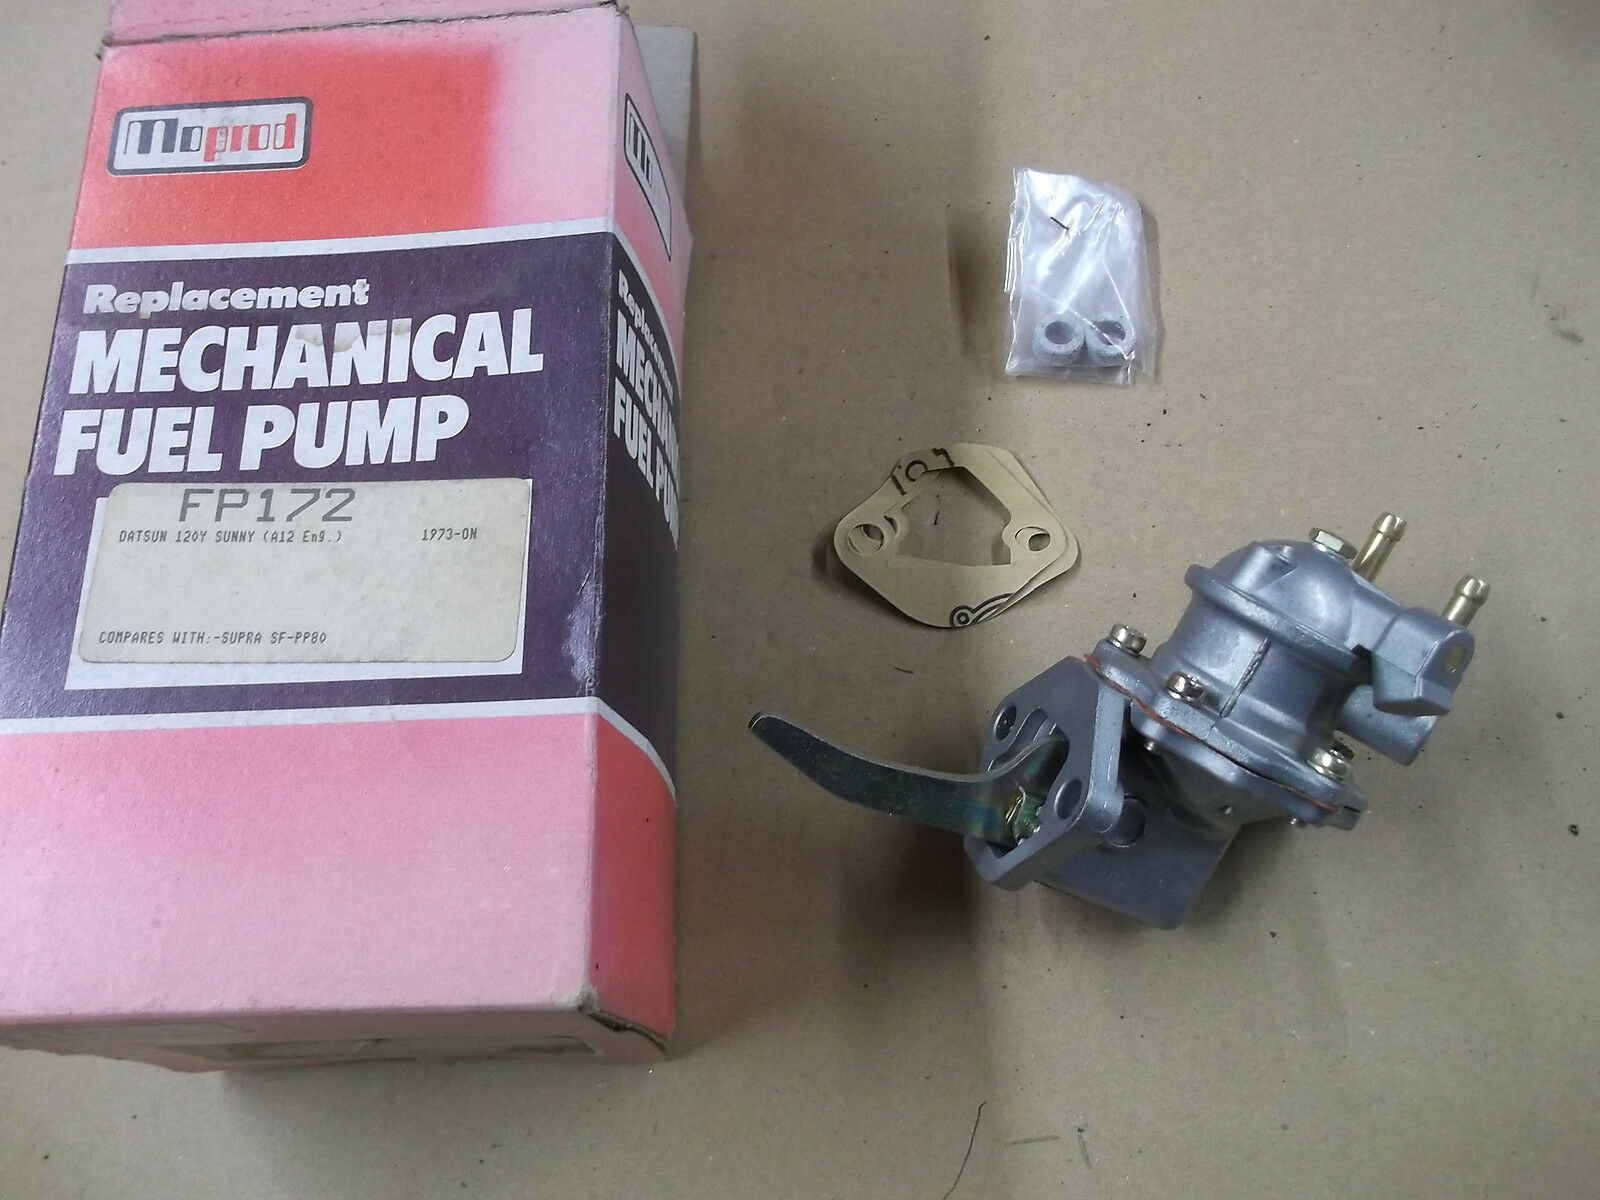 Datsun Nissan Sunny 120y A12 New Fuel Pump 499 Picclick Uk 1 Of See More